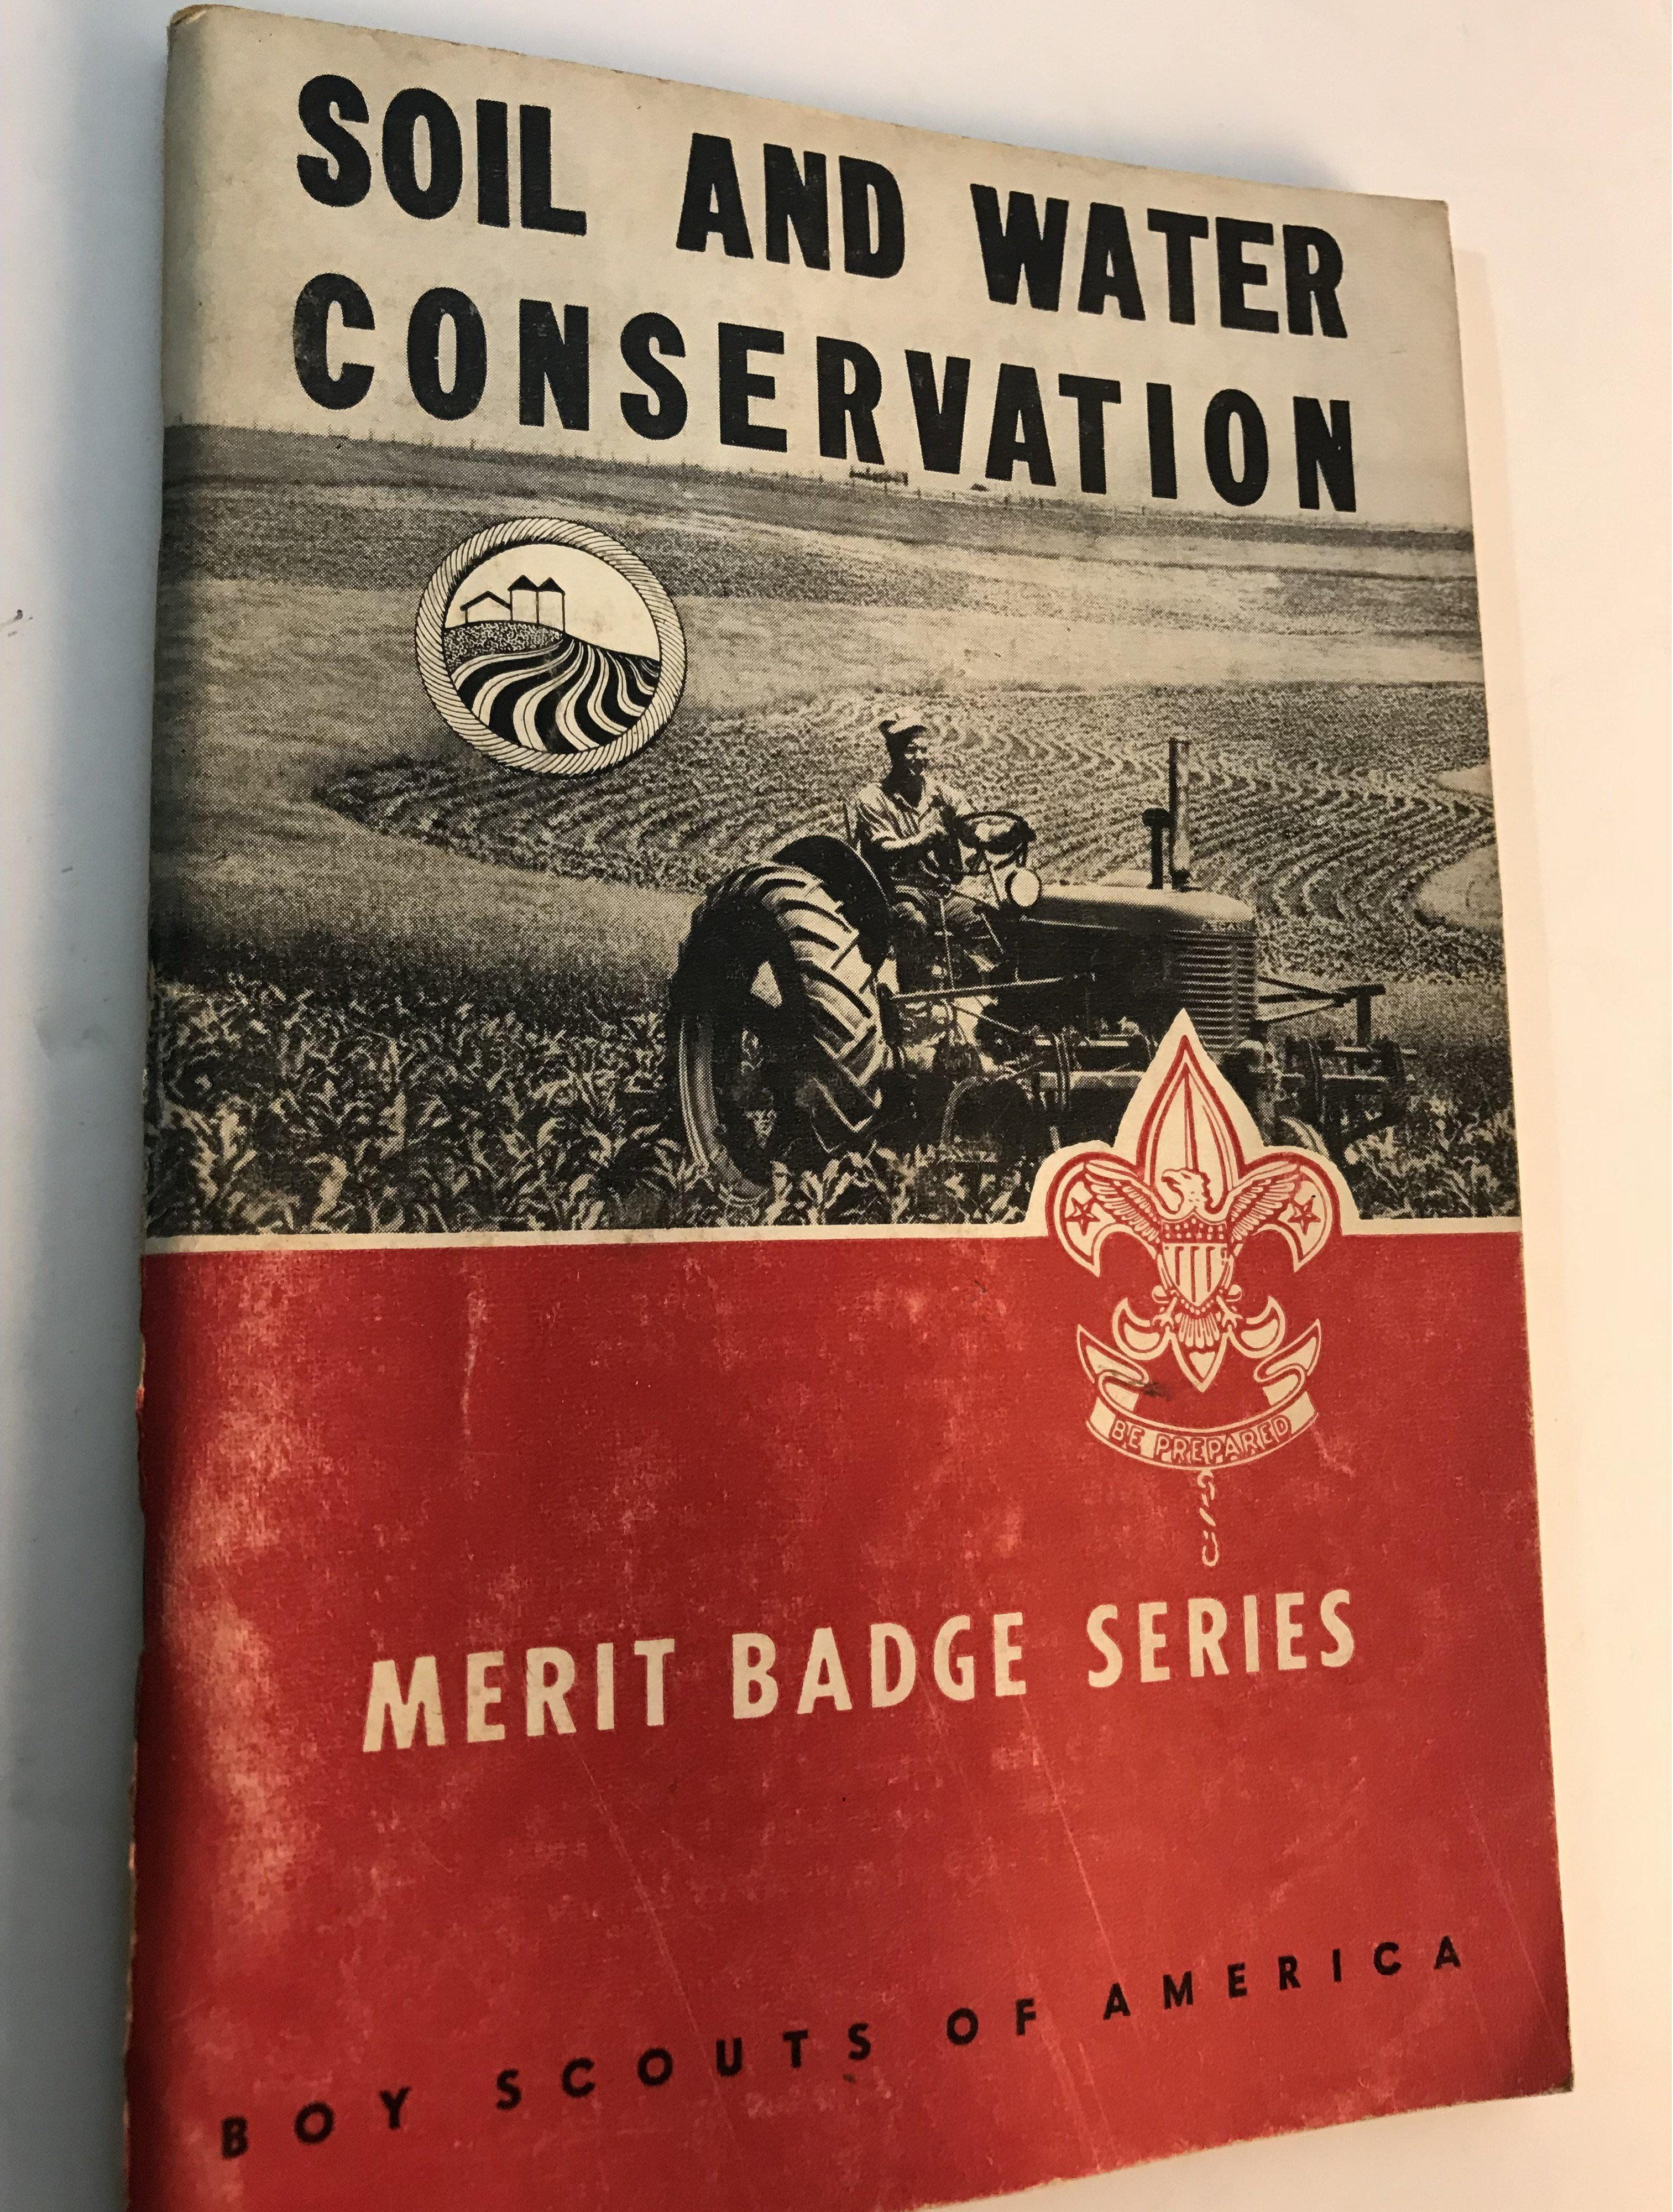 Boy Scouts Of America Merit Badge Series Book Soil And